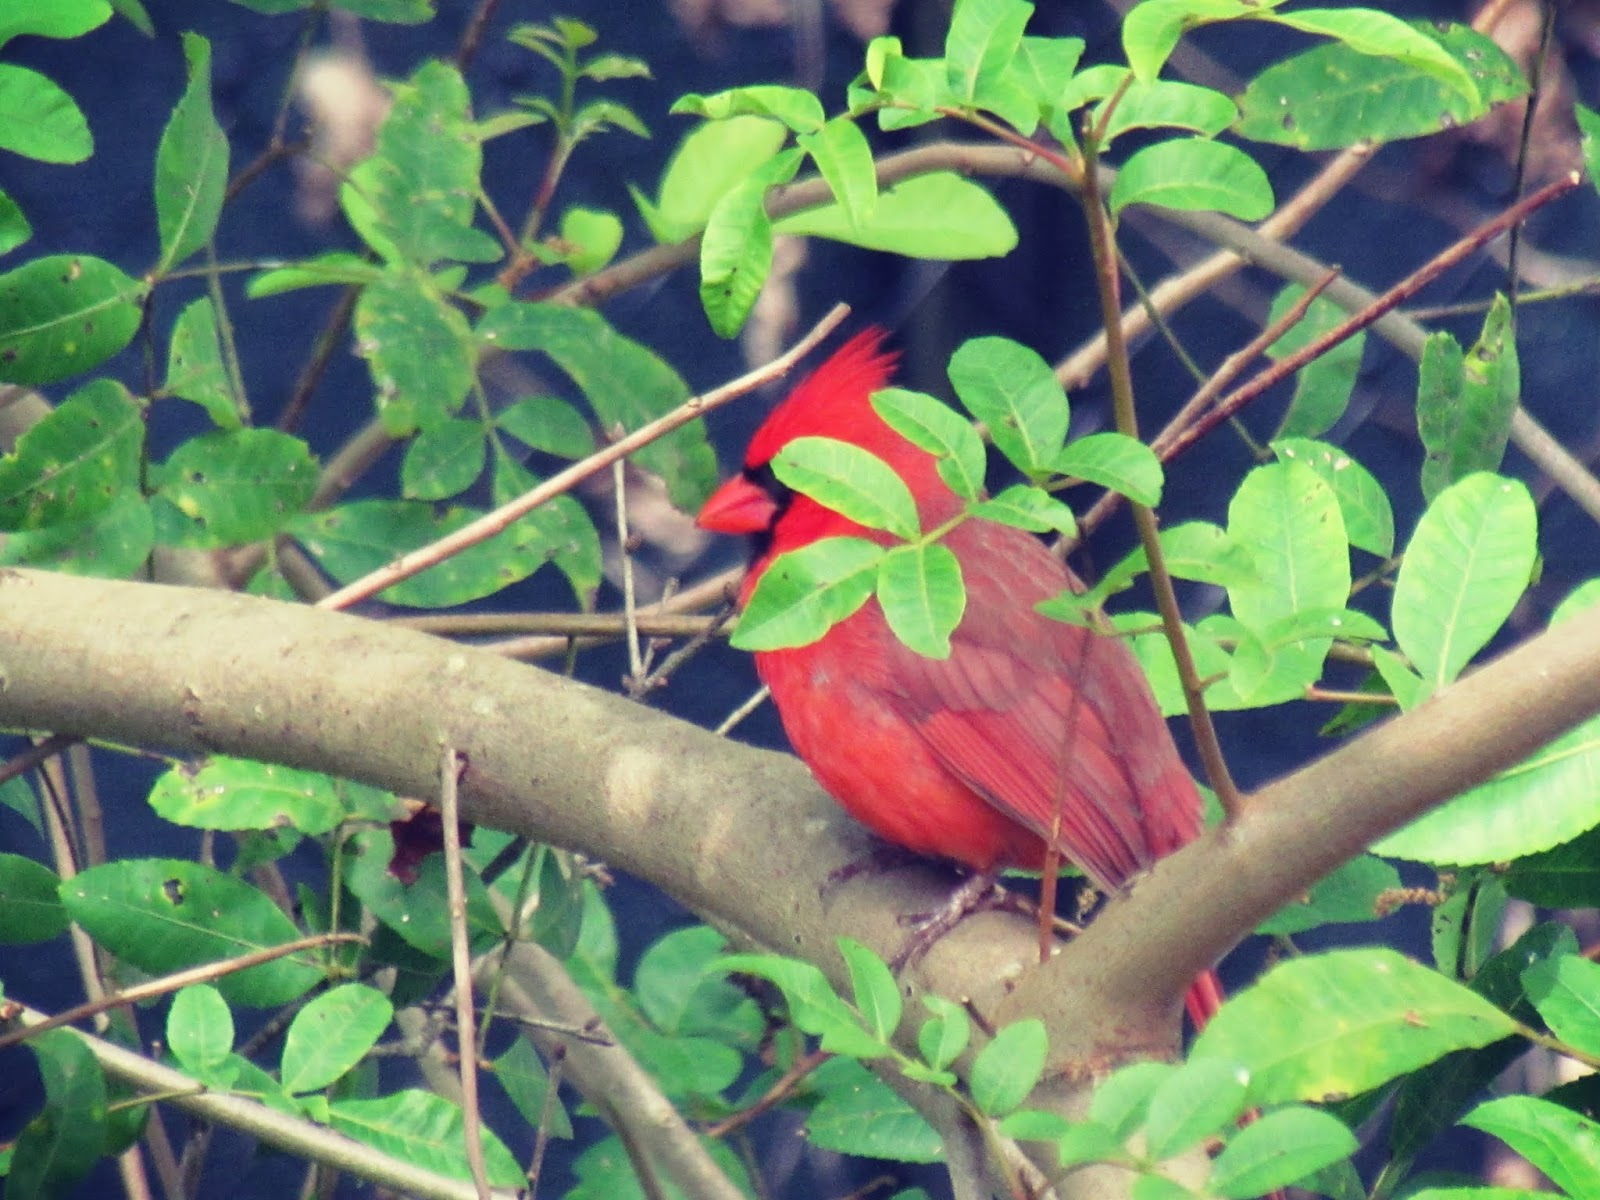 red cardinal bird found in a tropical Florida backyard in a nature retreat